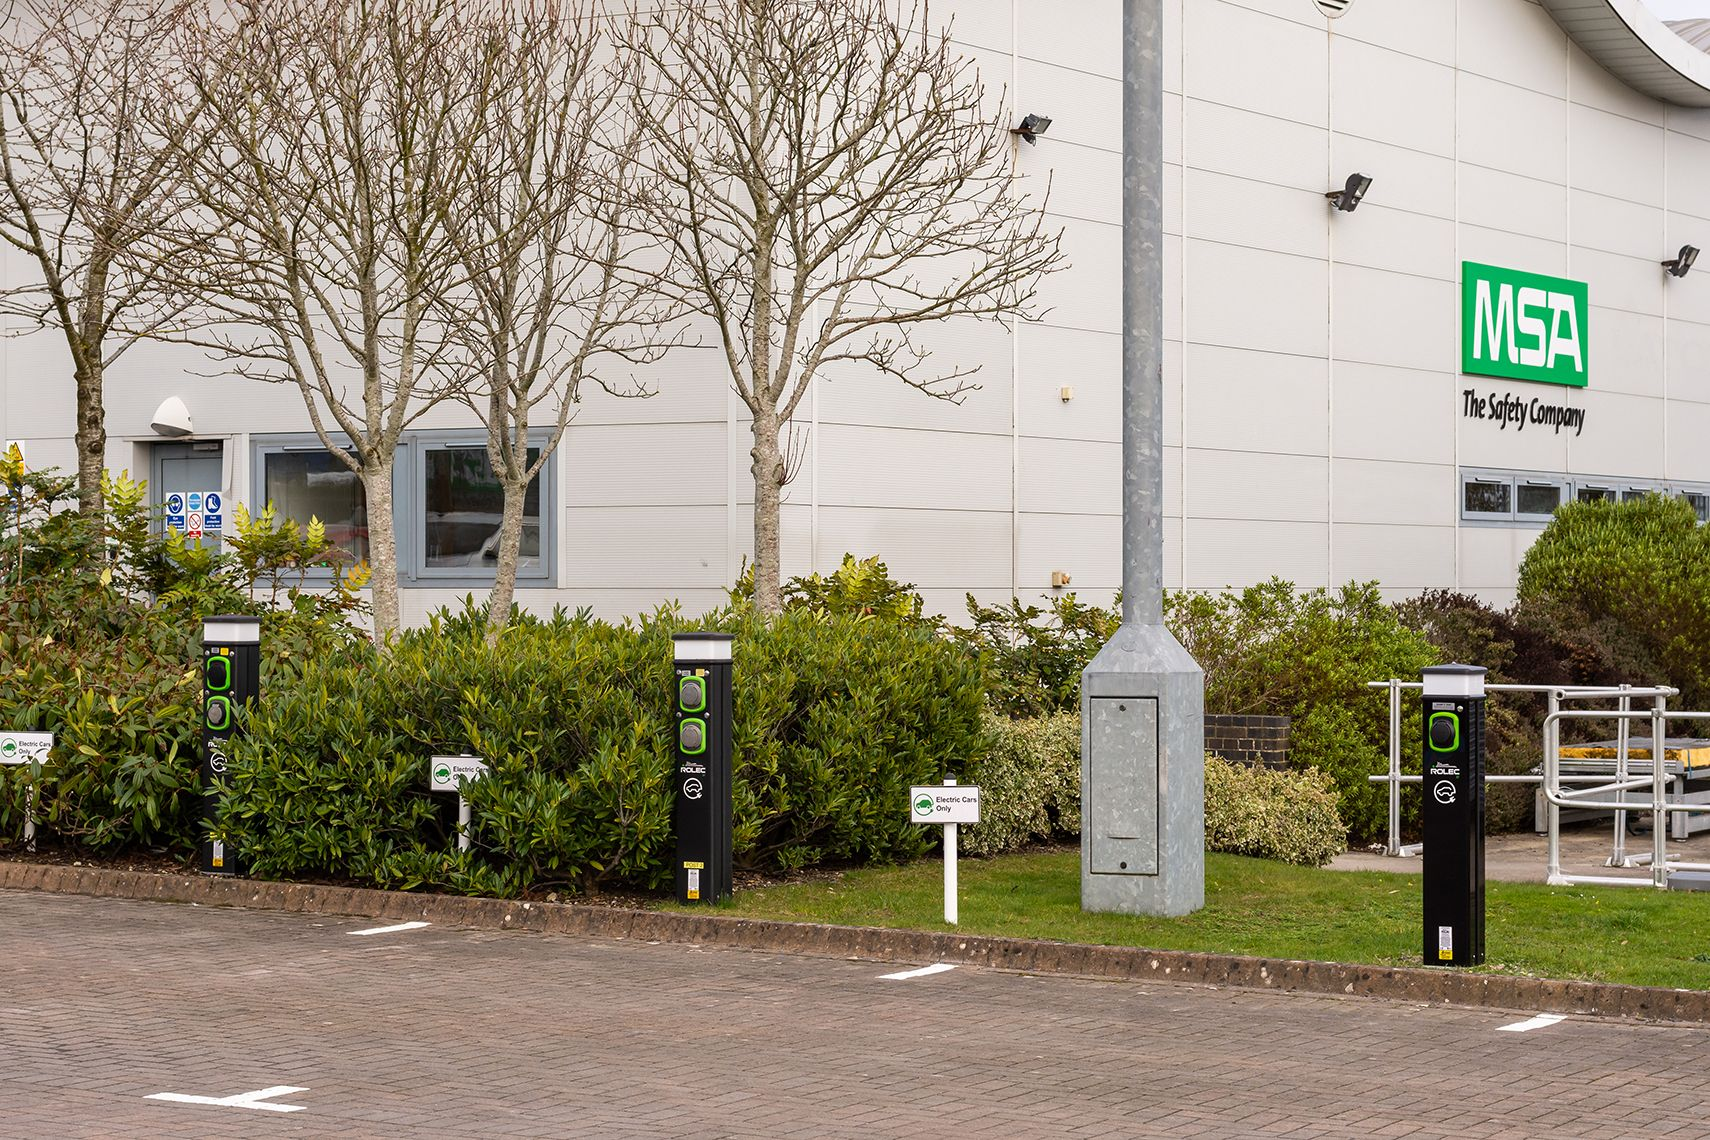 Car charging stations at MSA Devizes, UK